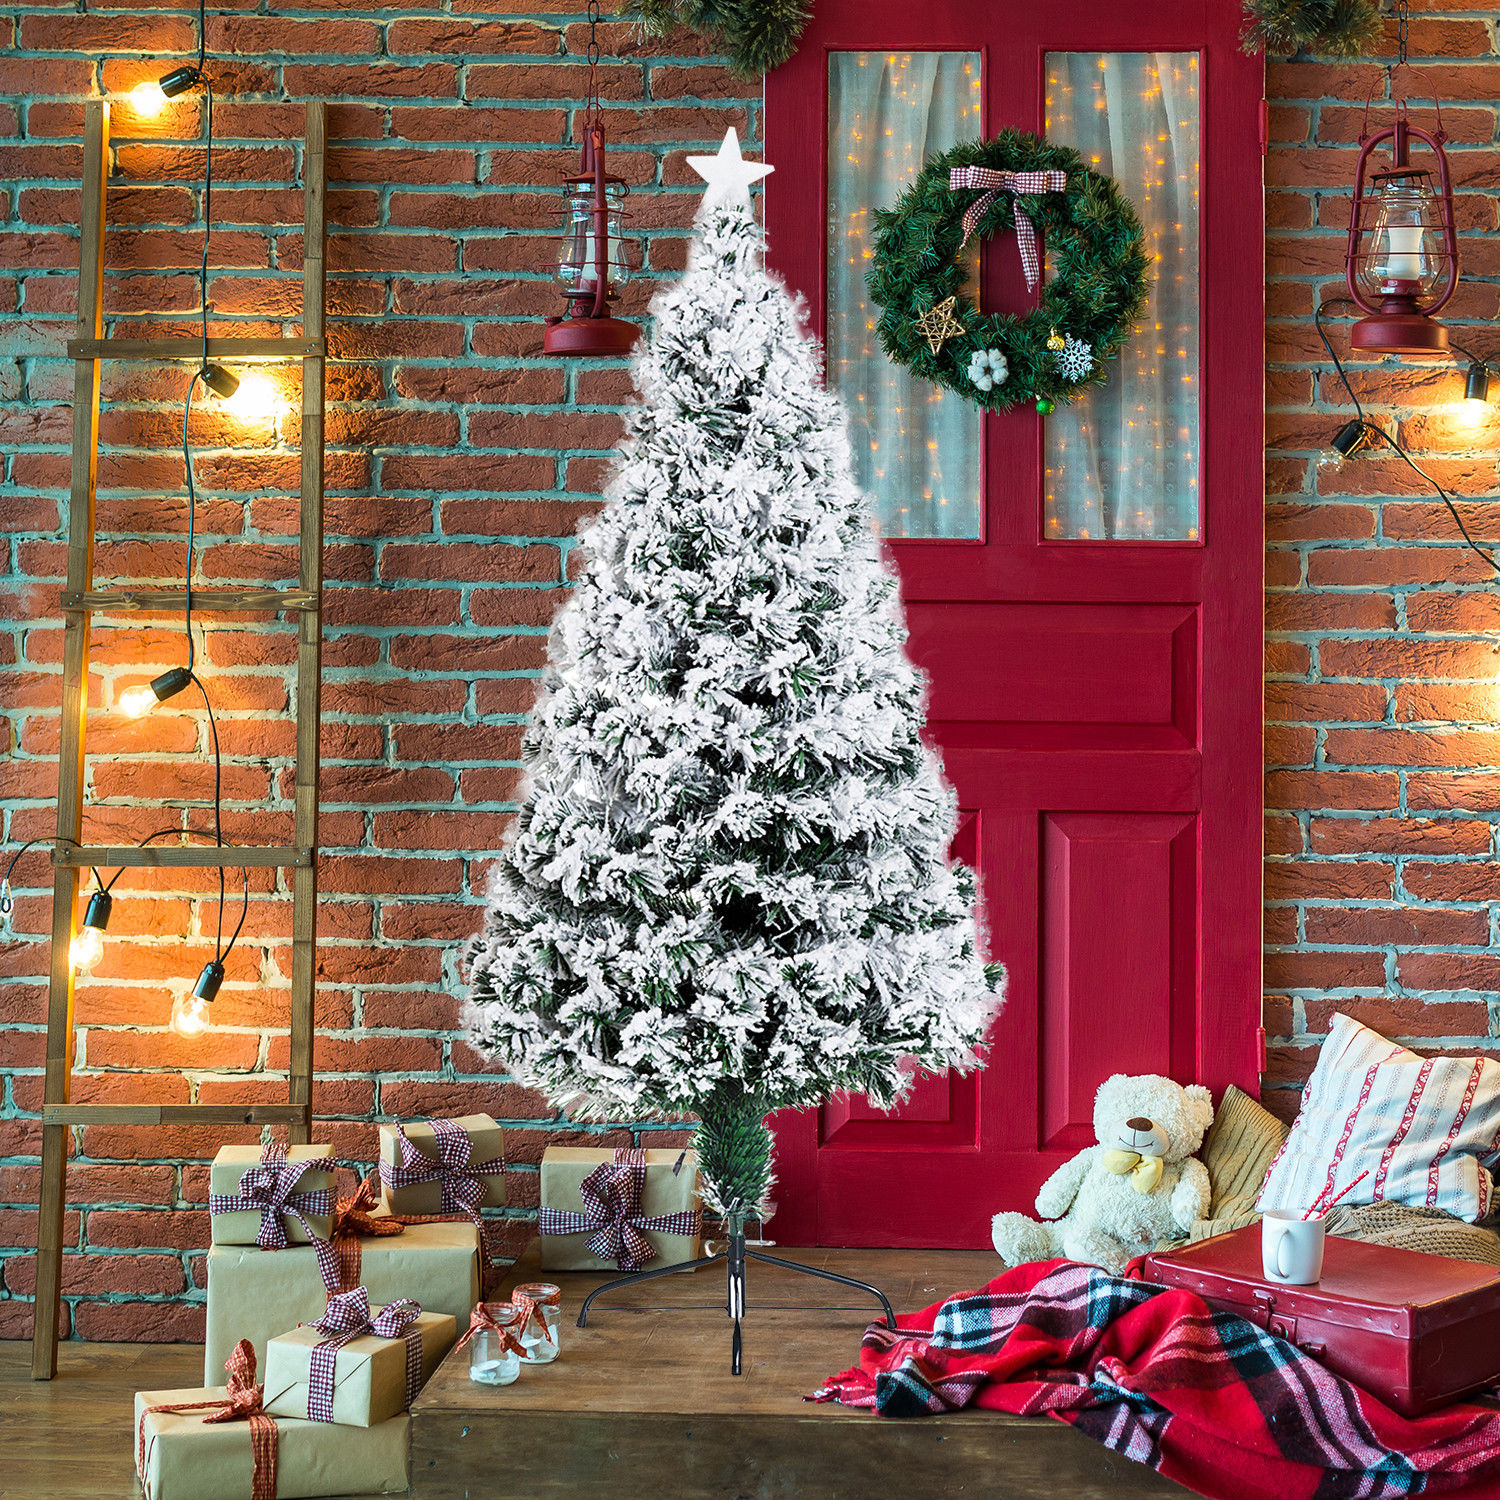 Image of £42.99 HOMCOM 5 Ft Artificial Christmas W/LED Lights / Fibre Optic Tree Green Pine With Snow Scattered Xmas Pre-lit Colorful Holiday Decorations Metal Stand (5ft 180 tips) 3ft 4ft 5ft 6ft 7ft LED Snowflake from 7.99 830-065 5055974833937